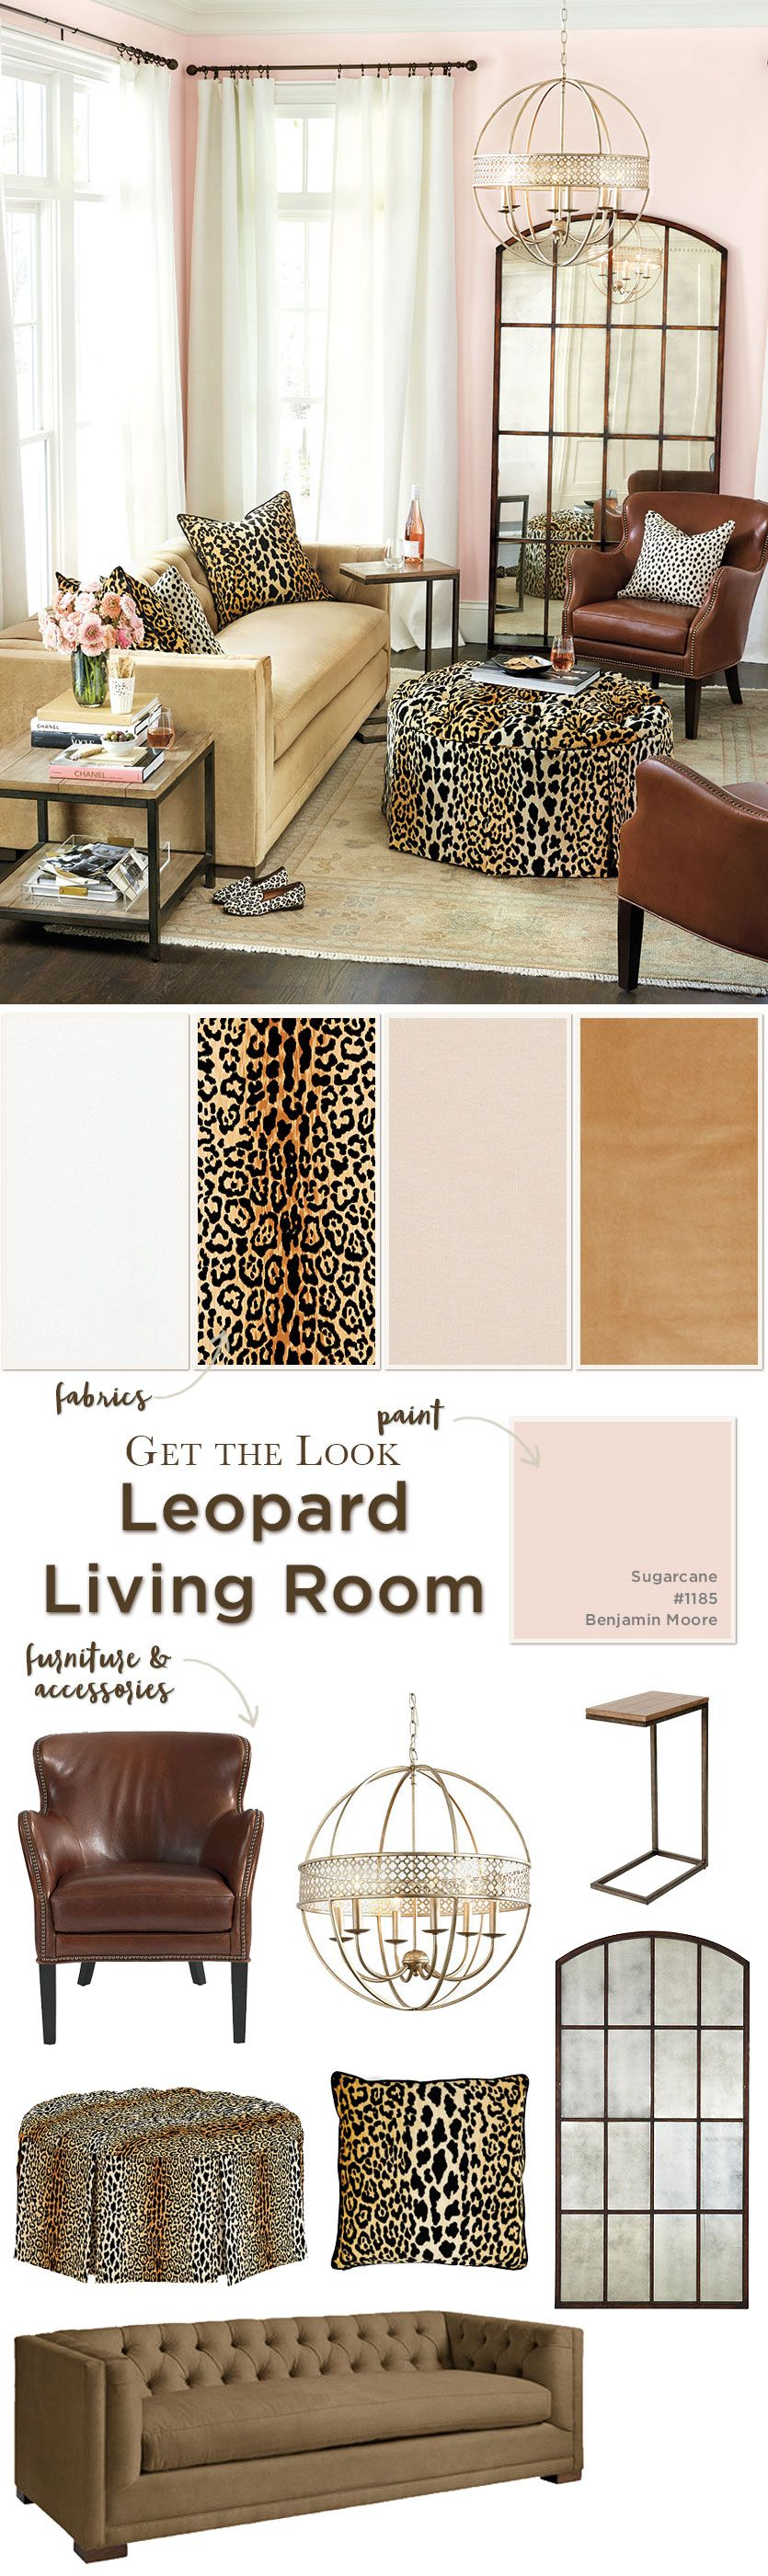 Get the look: leopard living room | Pinterest | Leopards, Living ...